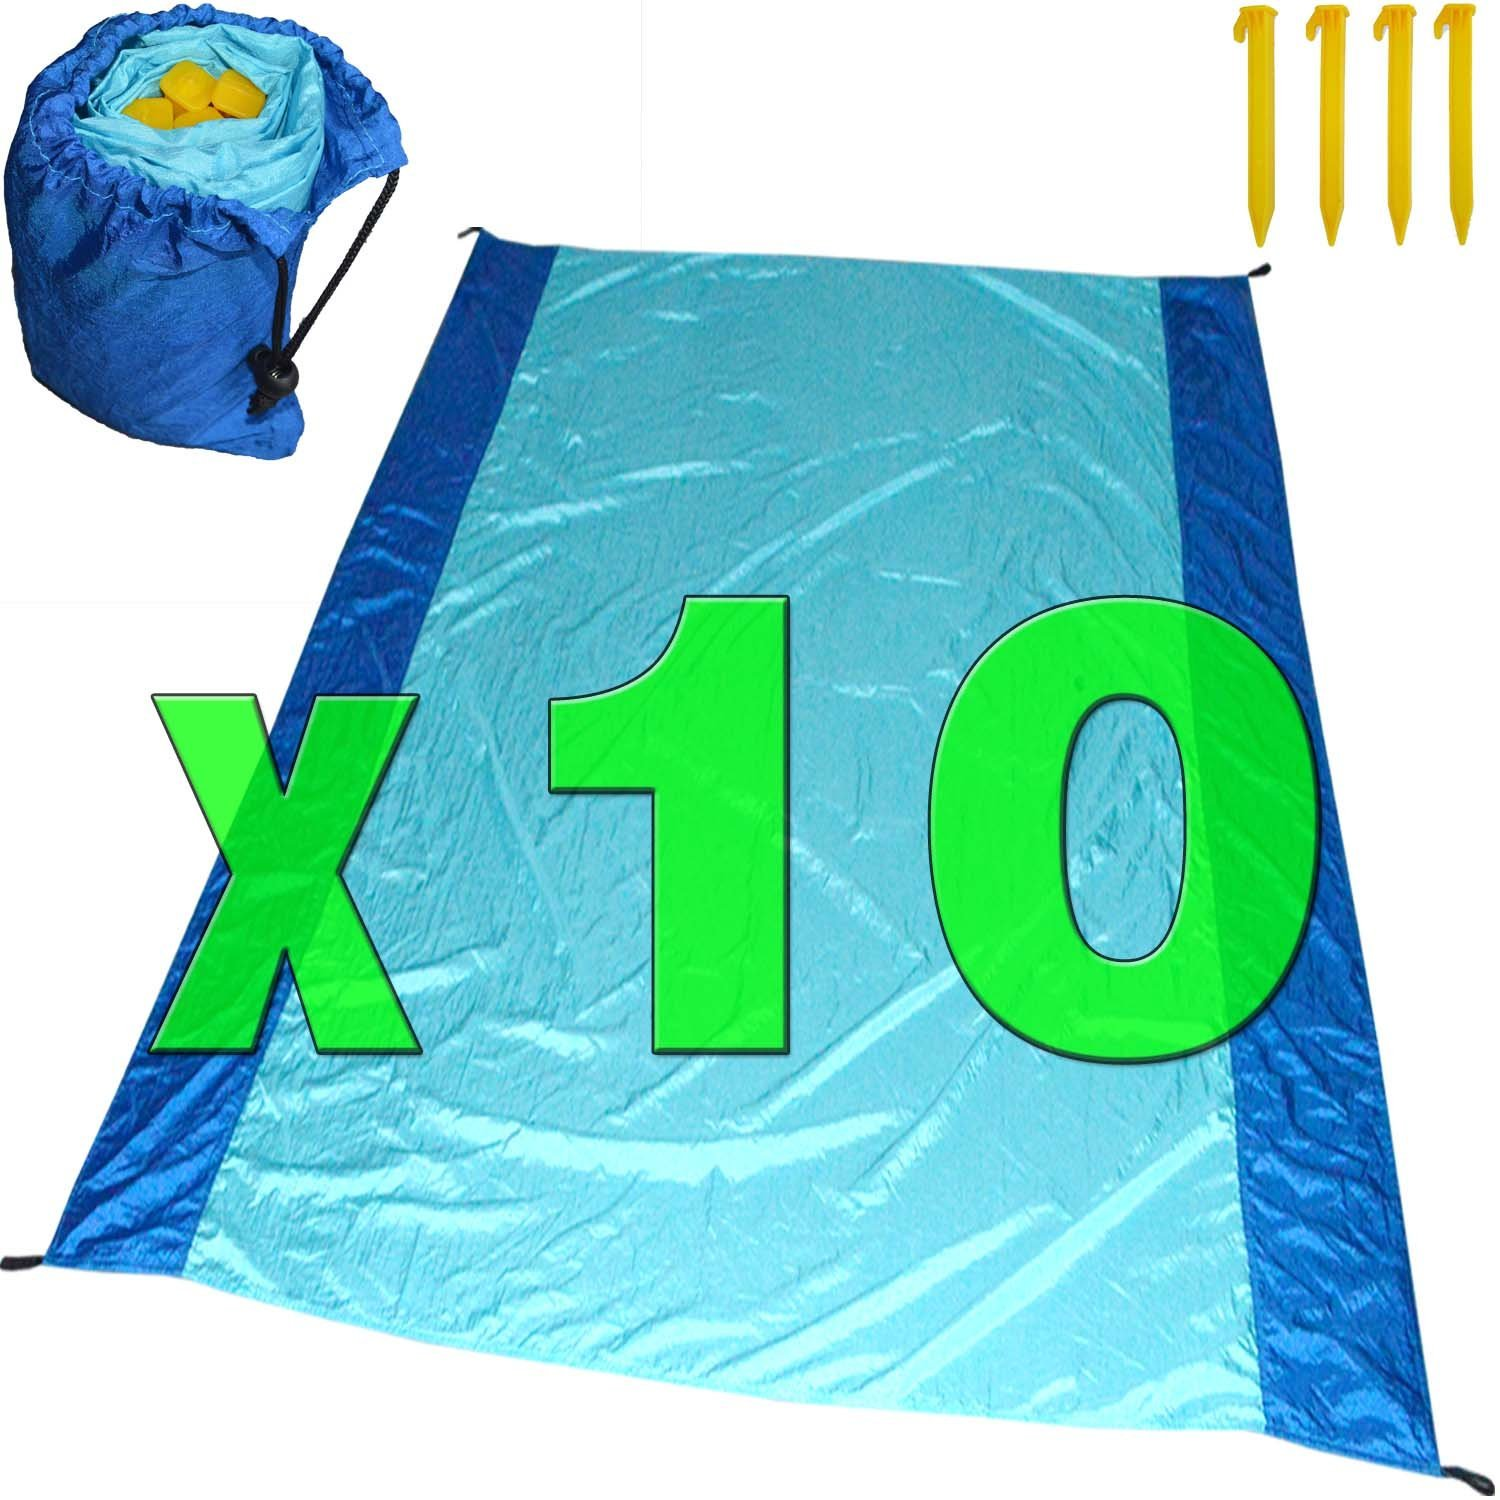 [Pack of 10] Sand Proof Beach Picnic Blanket of Parachute Nylon, works as Shade Tarp Sheet for your Sandless travel escape perfect for drying towel not a black microfiber waterproof or resistant mat by Spencer&Webb (Image #1)